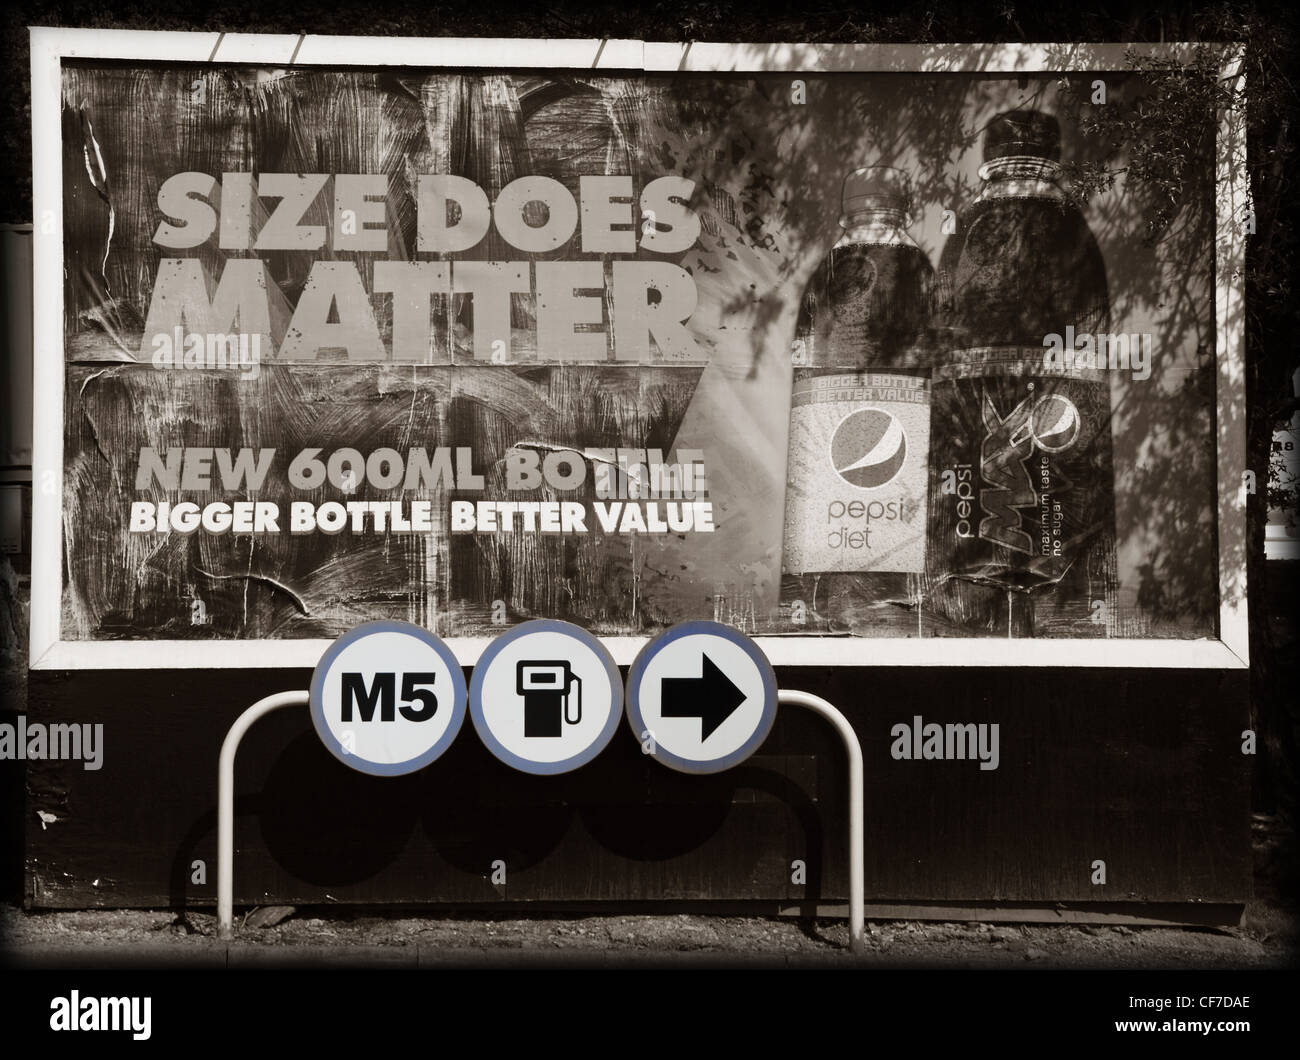 Size does matter poster at M5 Frankly services petrol fuel area Stock Photo